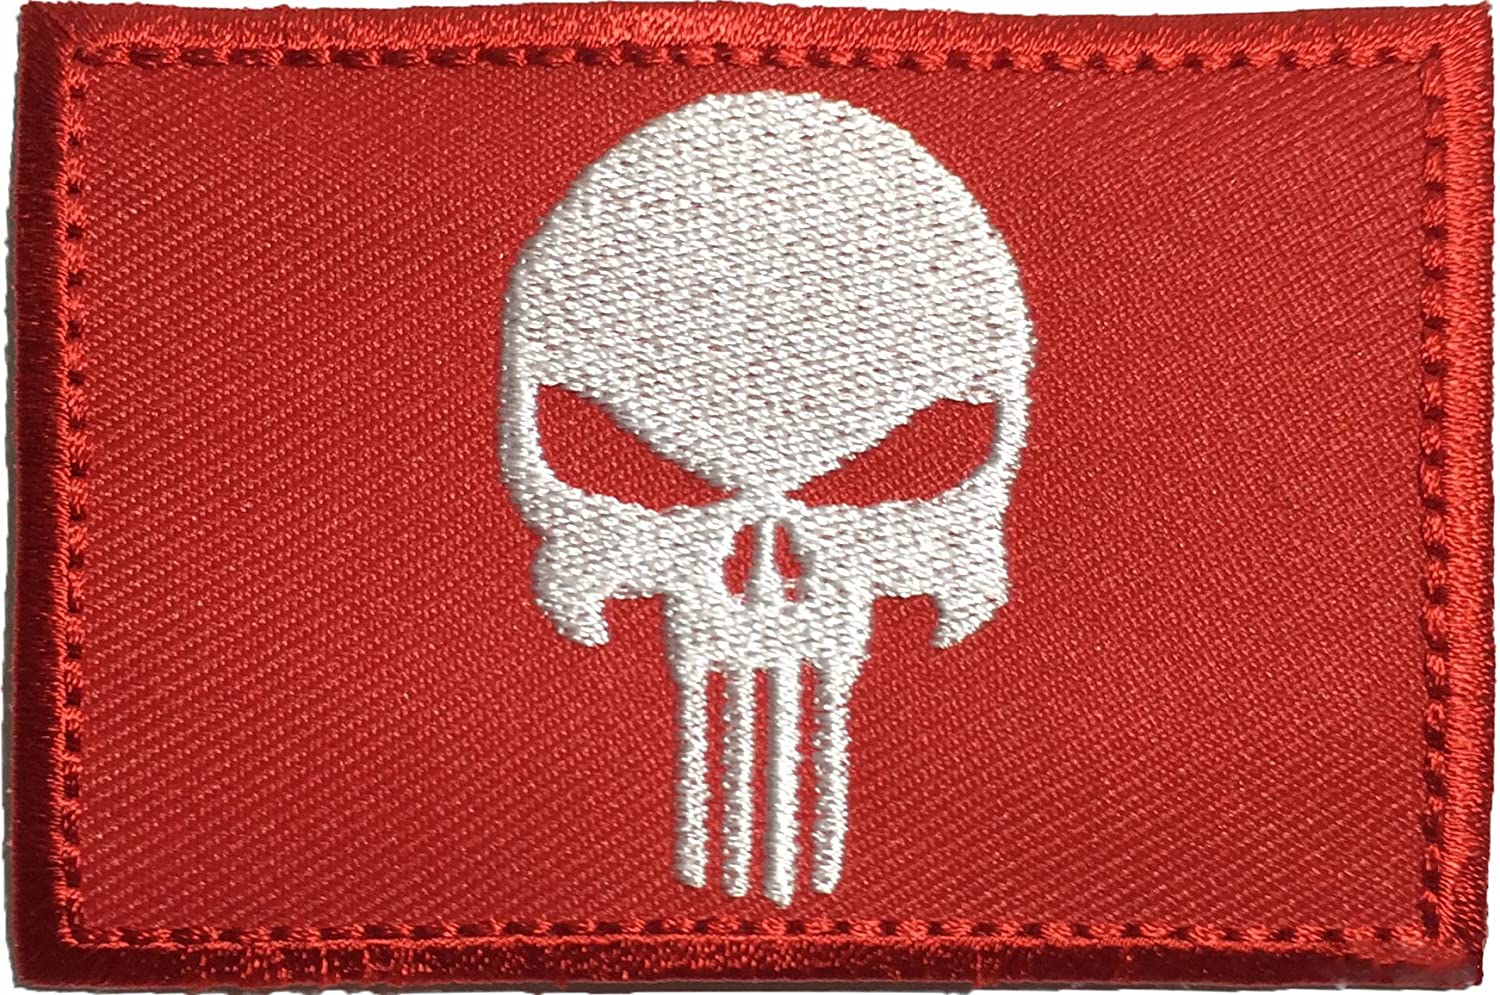 Tactical Morale Operator Punisher Skull Sew on Iron on Embroidered Applique Patch 2x3 Red - By Ranger Return (RR-IRON-PUNI-0RED) by Ranger Return   B01C8FE4VA